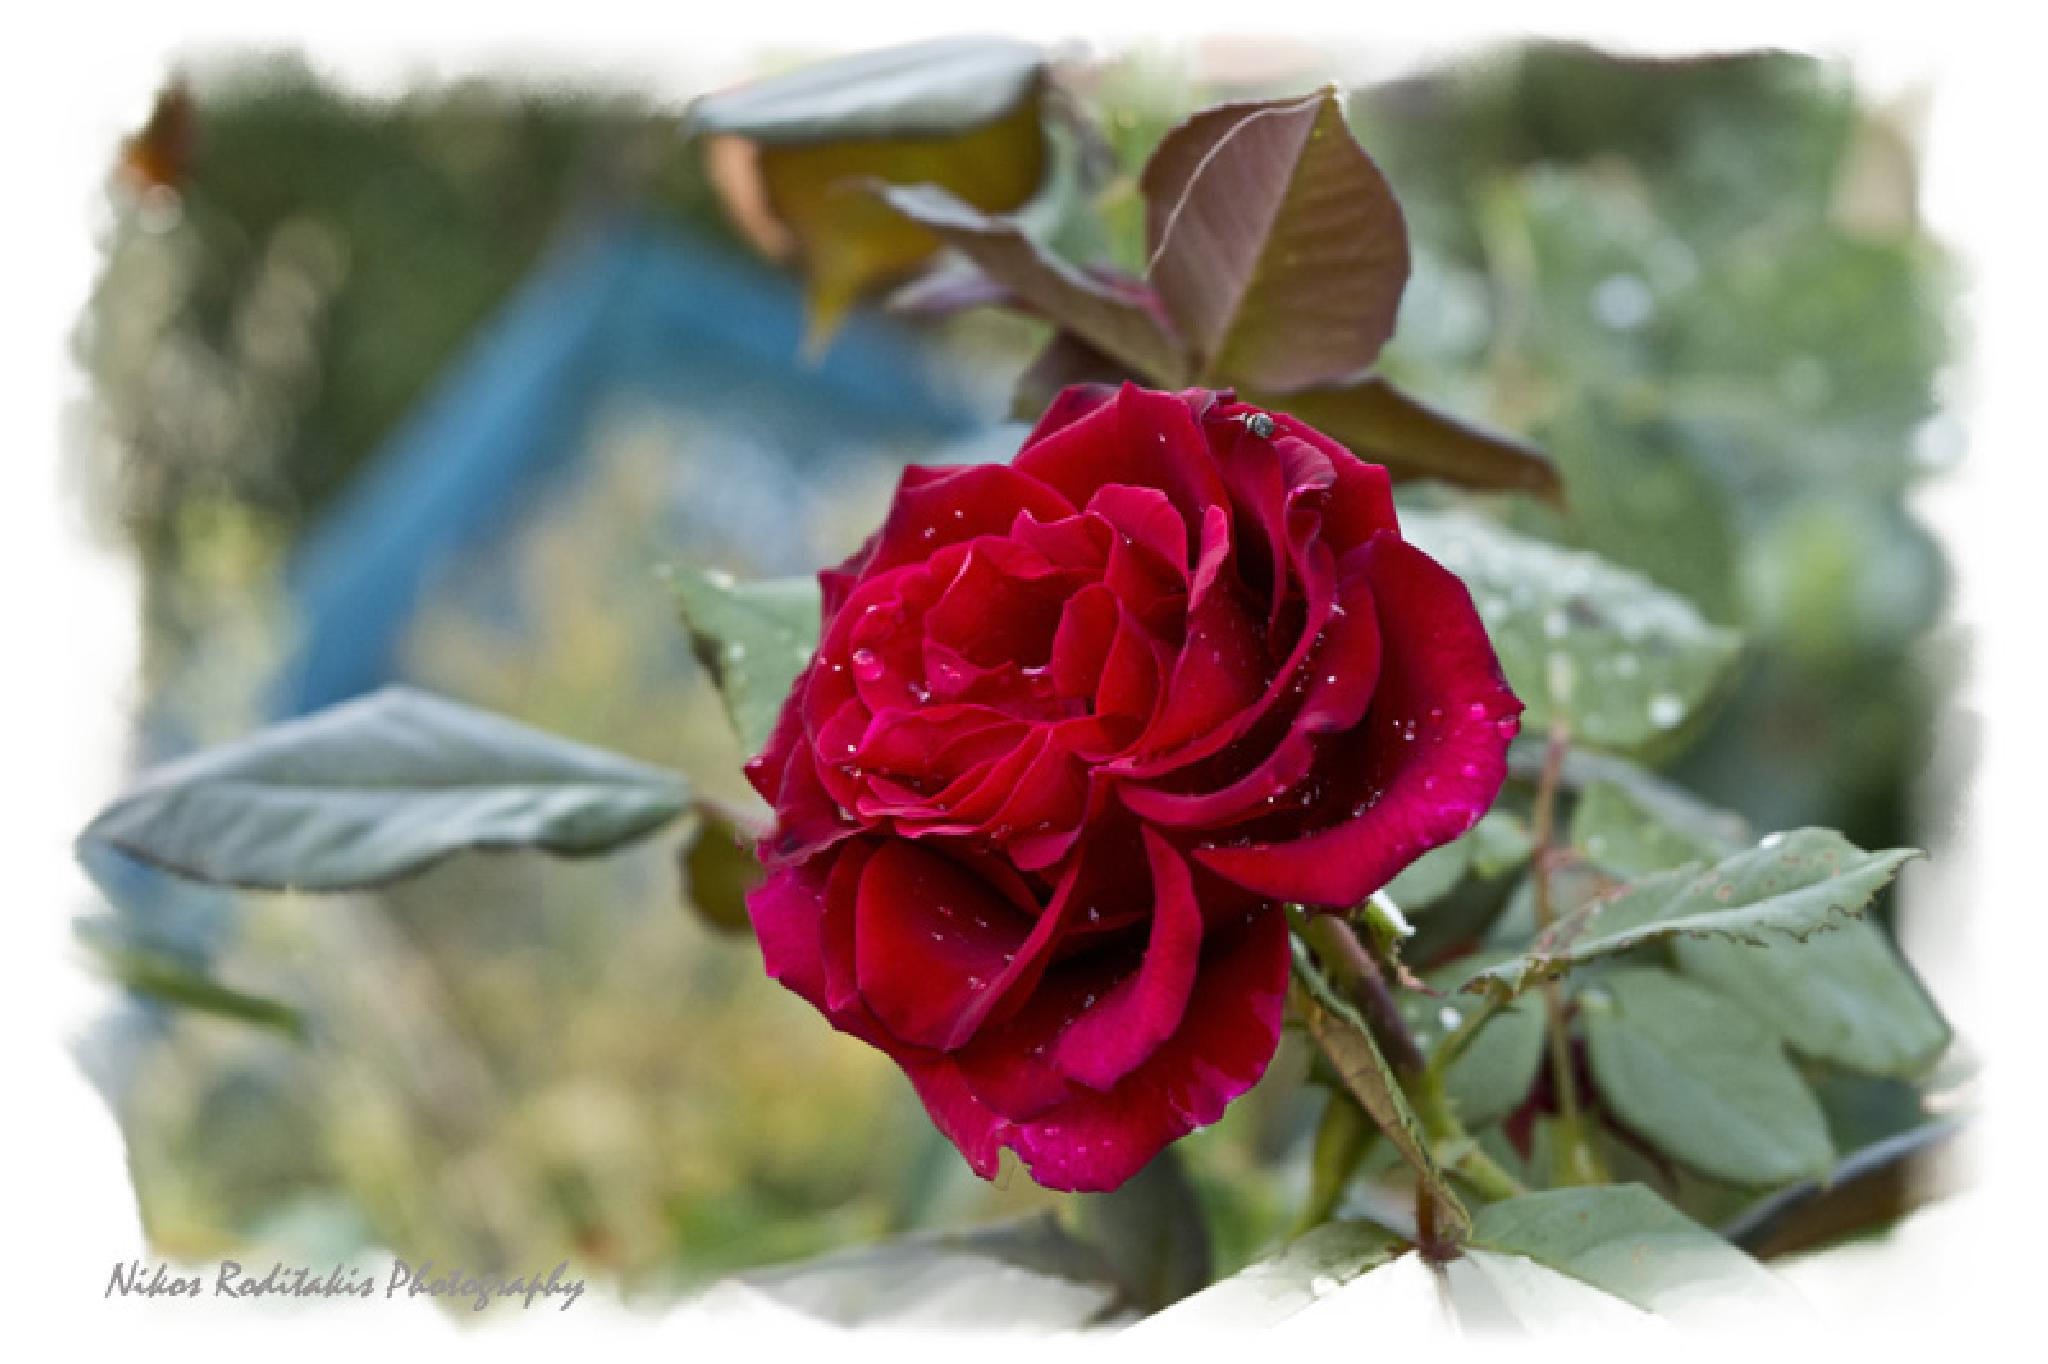 The beauty of red rose by Nikos Roditakis